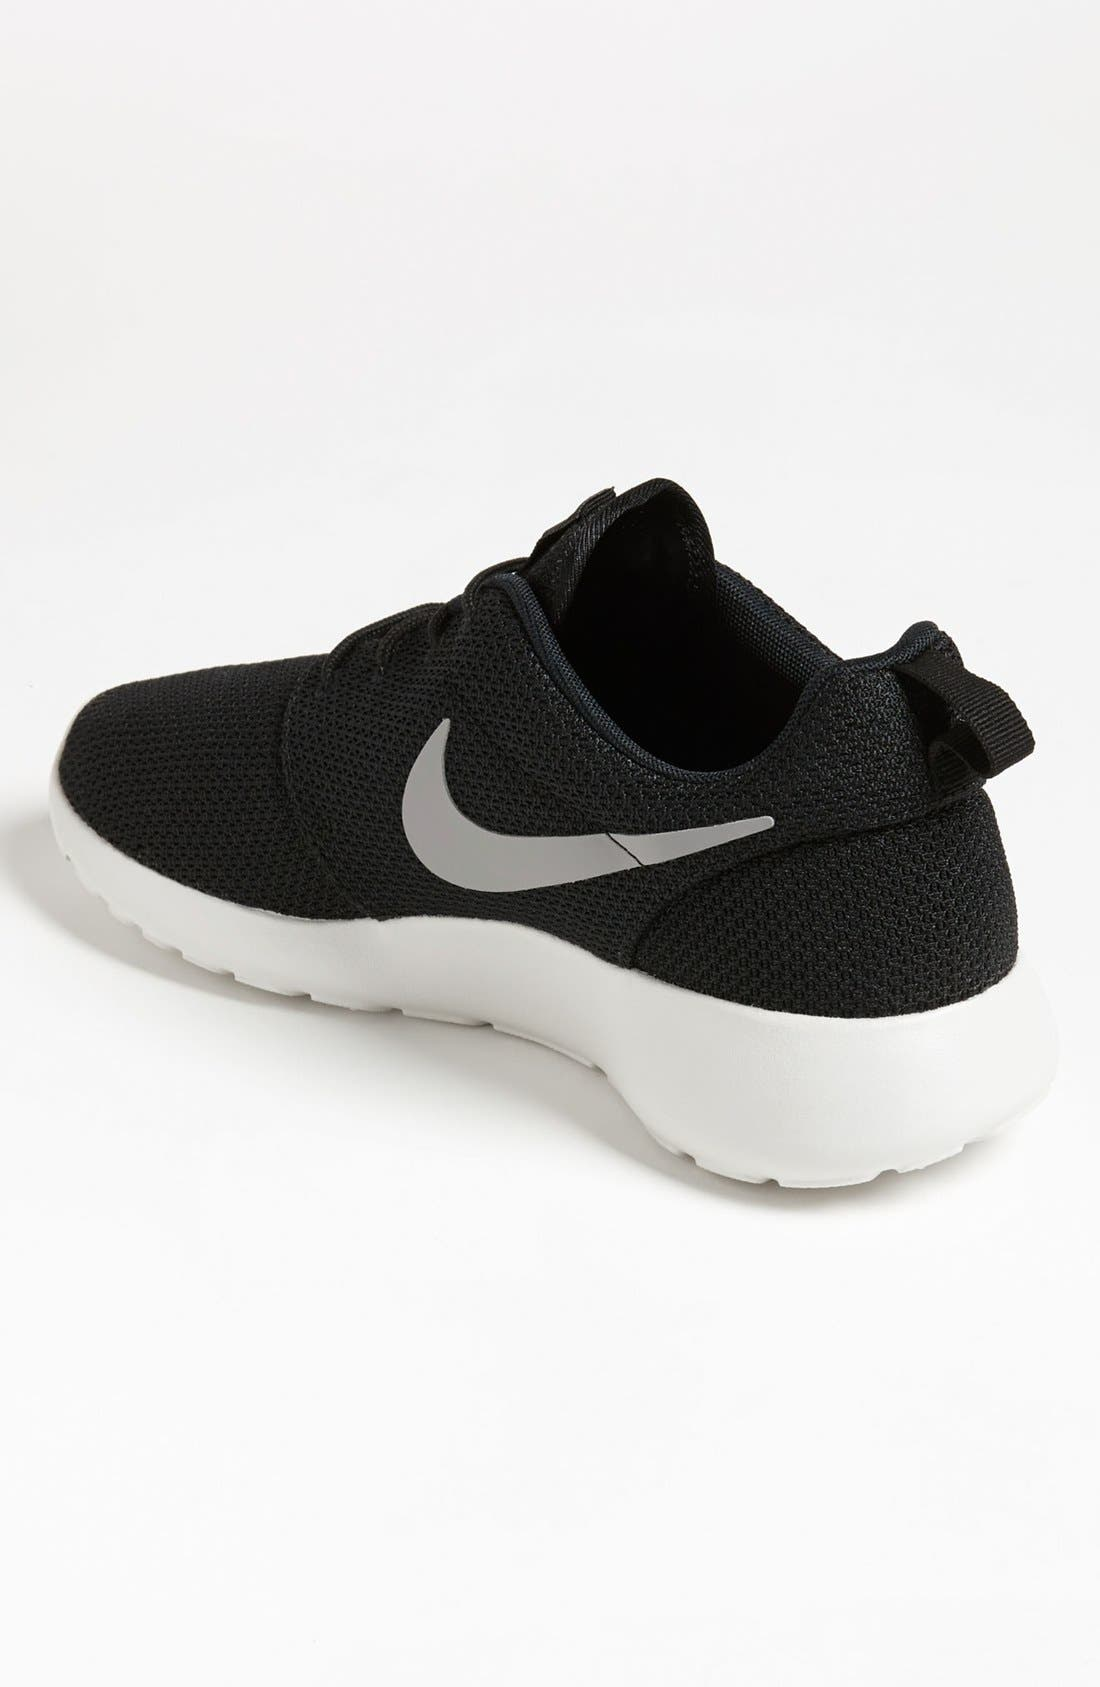 5328be3659d81 ... where to buy nike roshe run sneaker men nordstrom baf80 059d7 ...